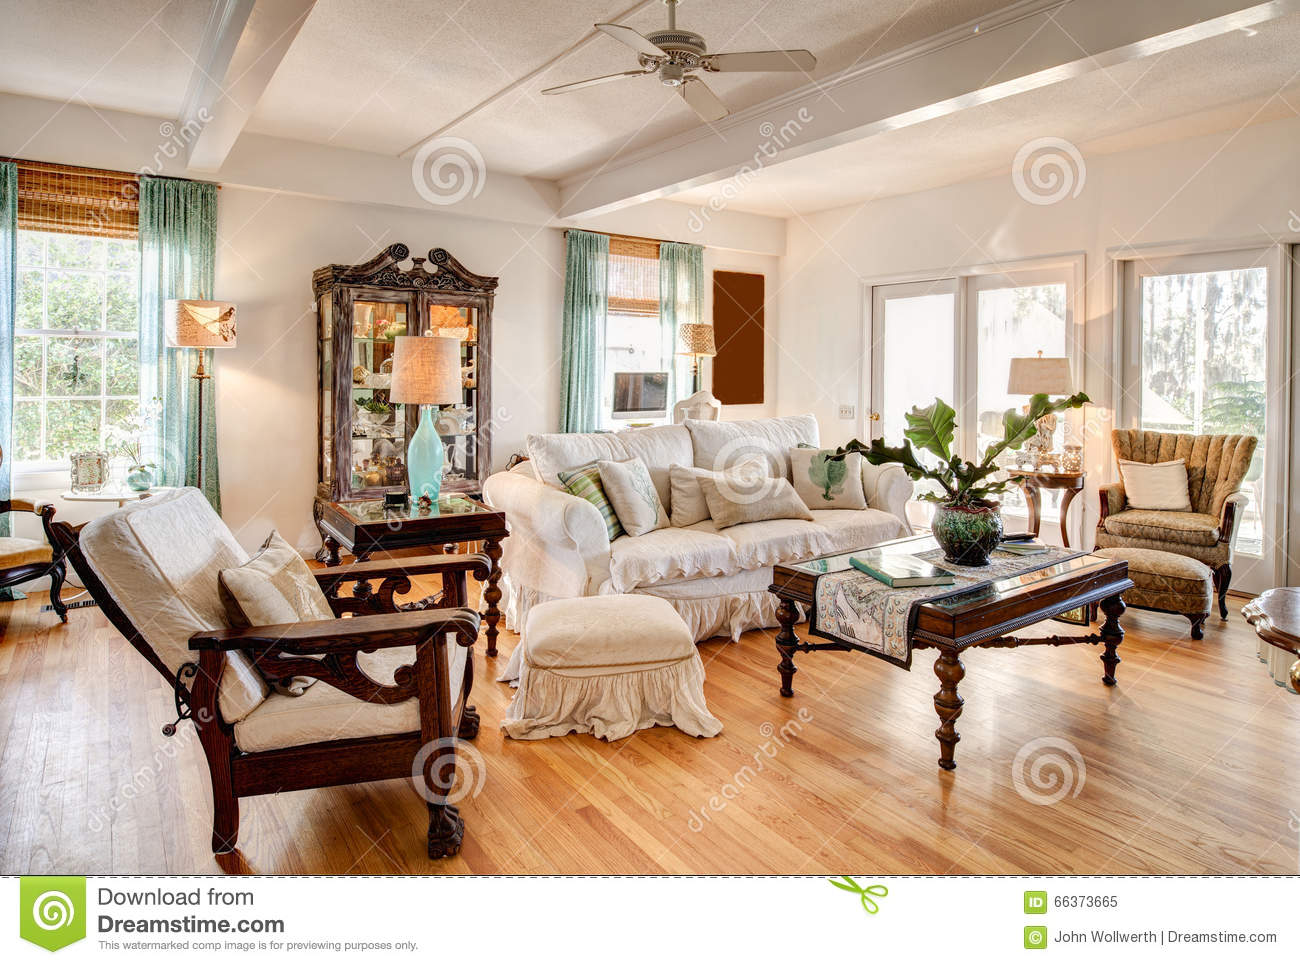 Modern livingroom with antiques stock image image of couch